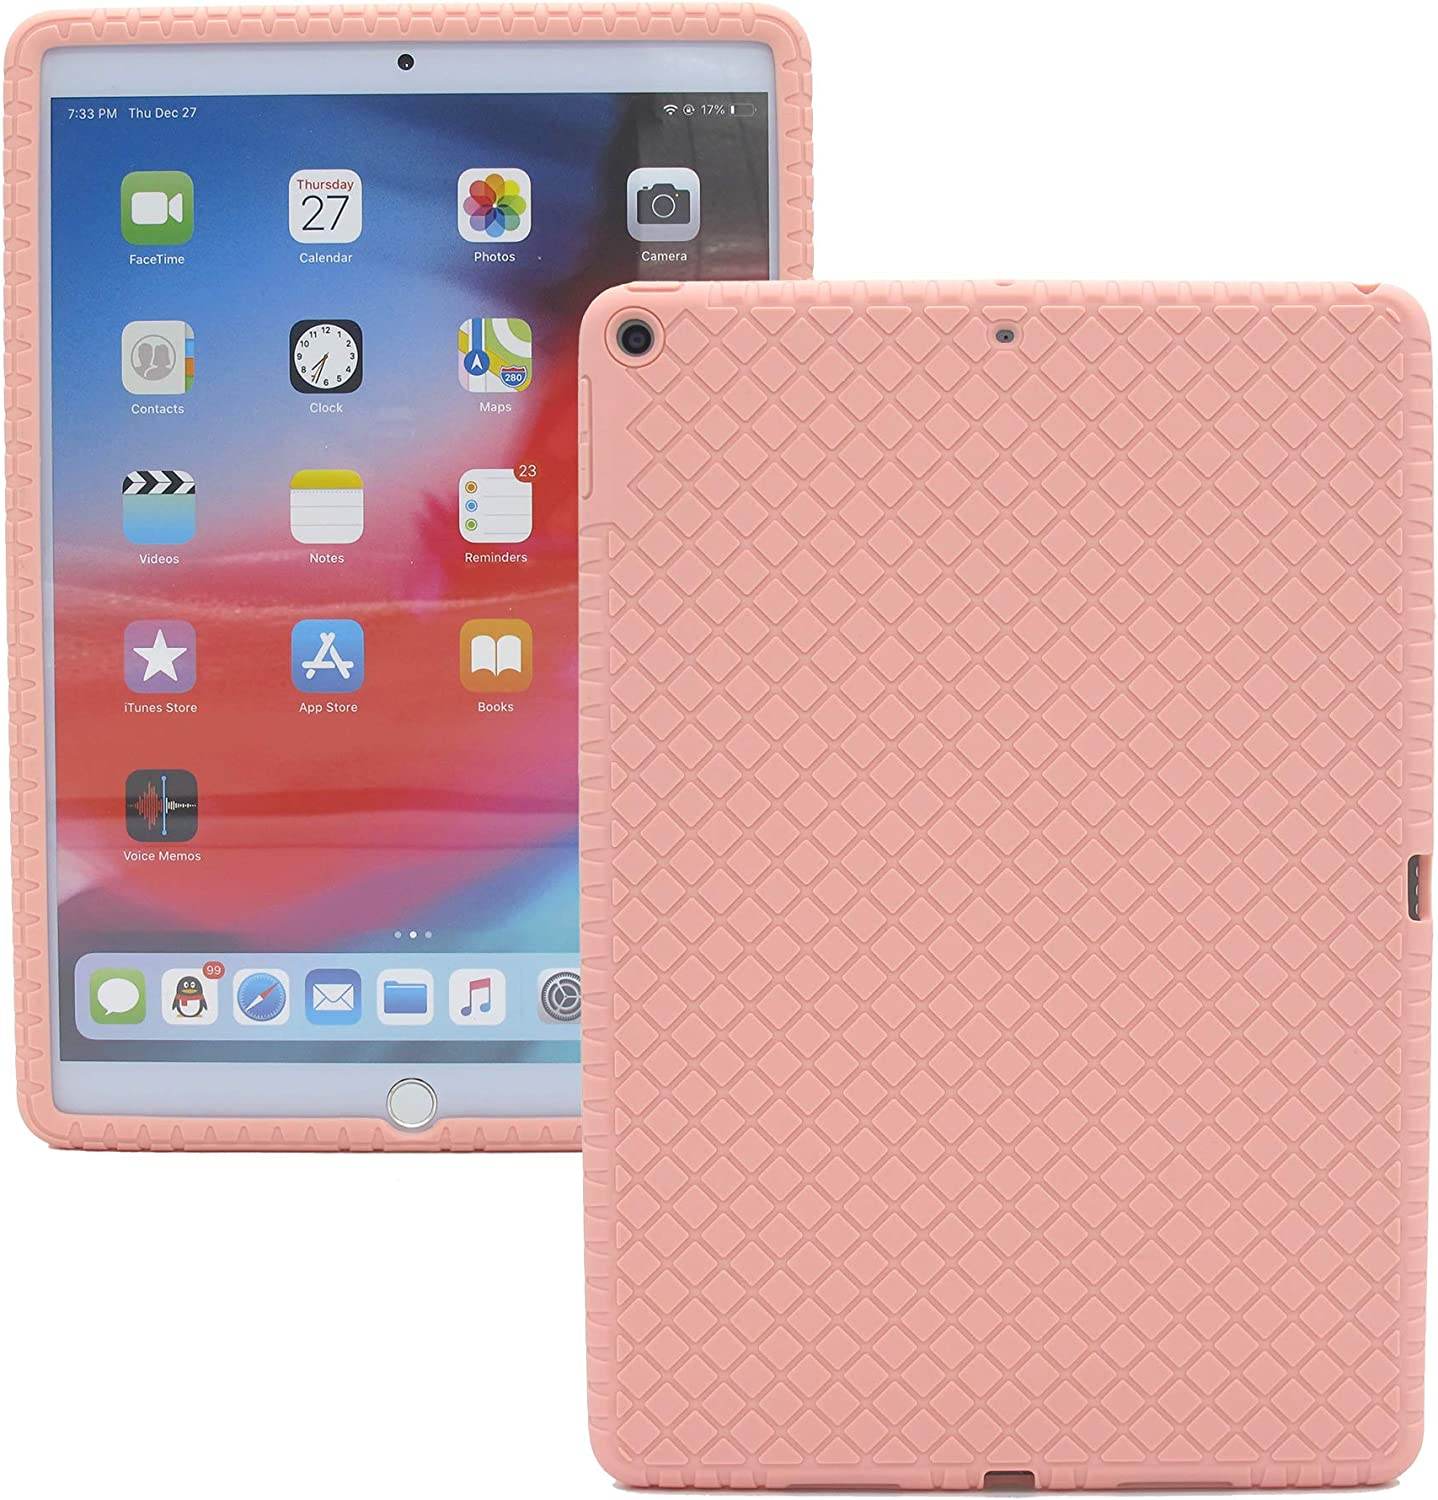 Veamor iPad Air 3 10.5 Inch 2019 Silicone Back Case Cover, Anti Slip Flexible Rubber Protective Skin Soft Bumper Only for Apple iPad Air 3rd Gen (Won't fit iPad Air 1 / Air 2) (Pink)